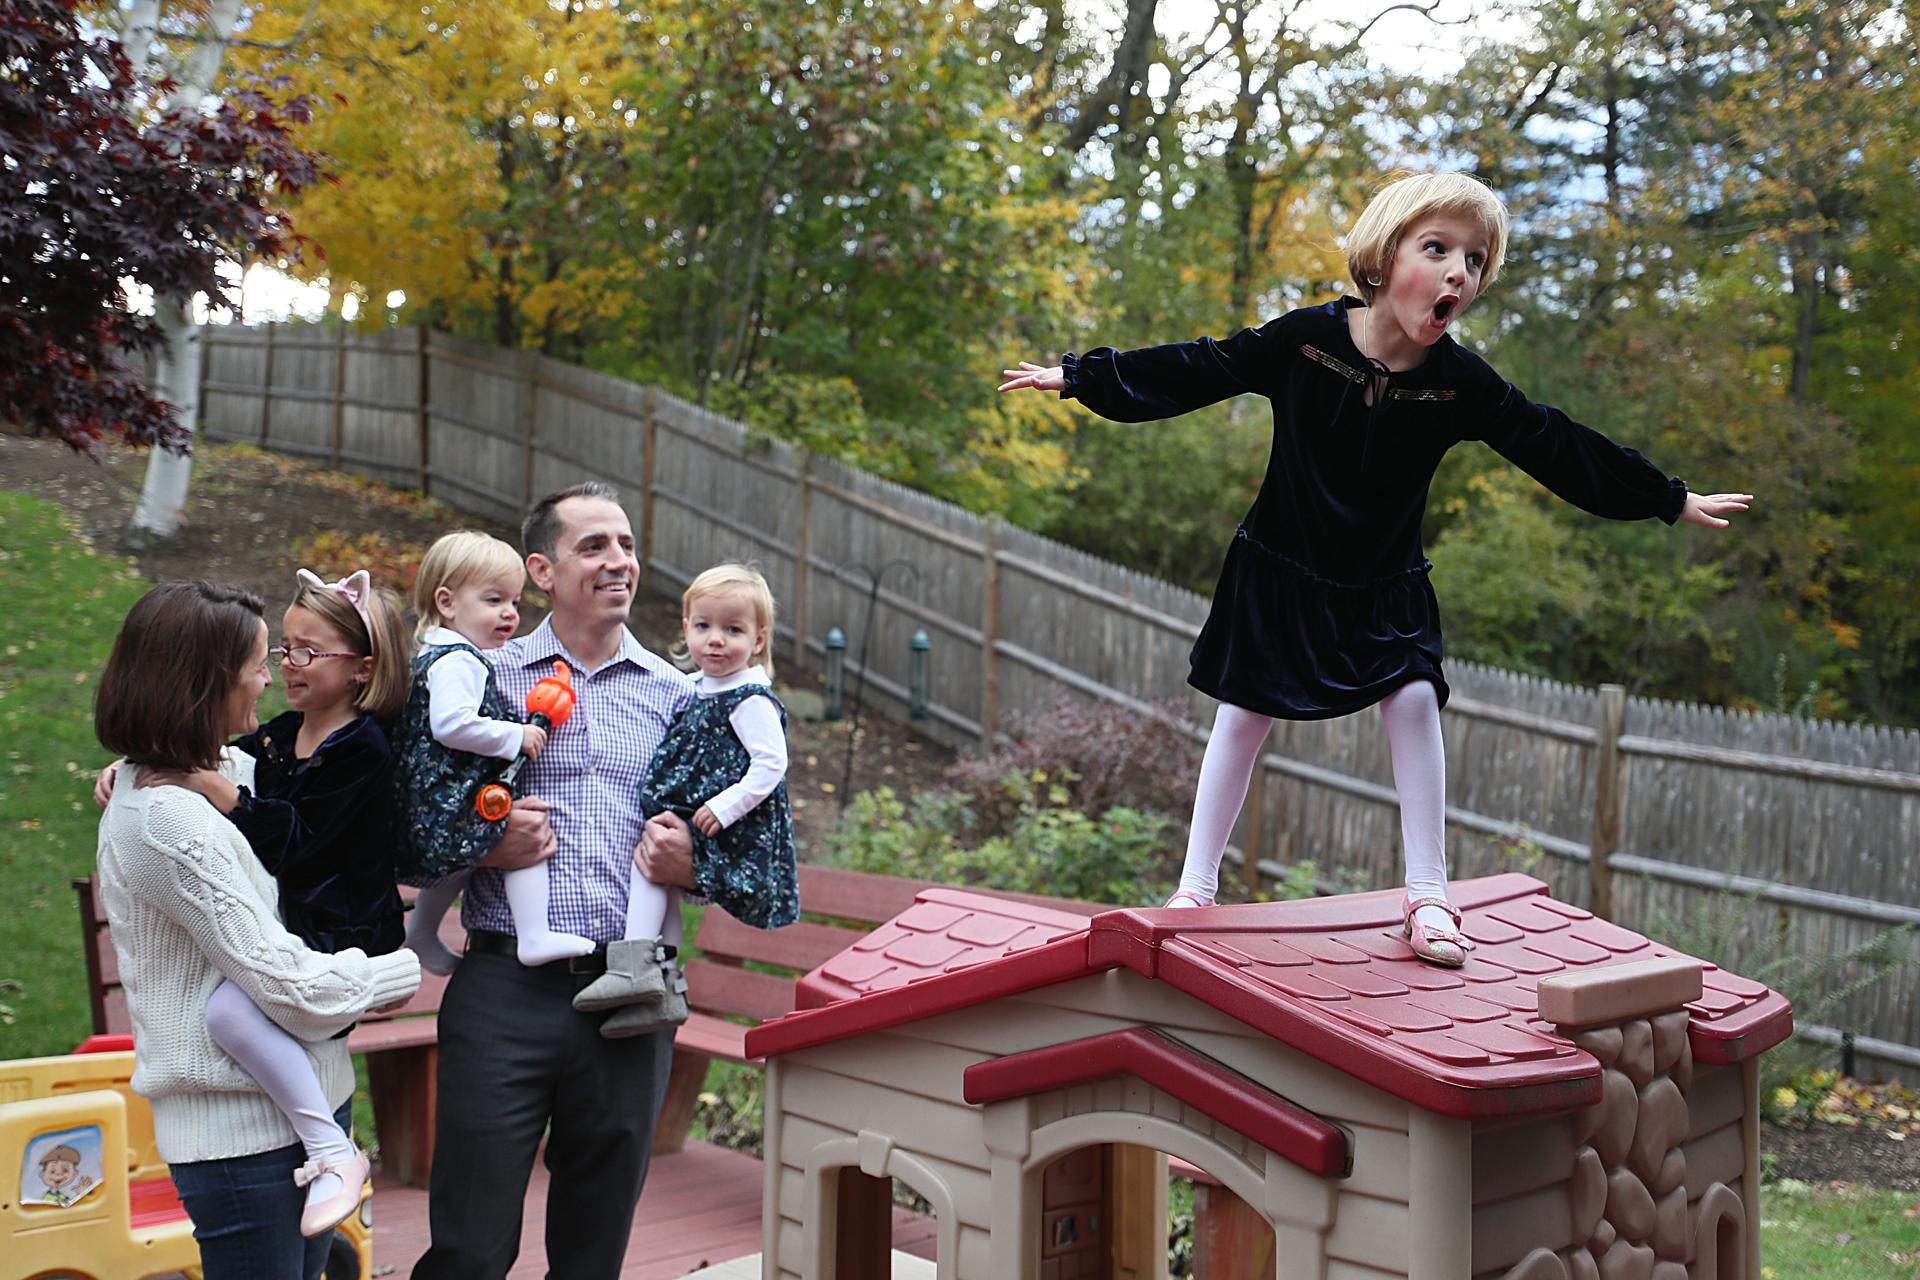 Needham, Ma., 10/30/2018, This is the d'Hemecourt family, whose 5-year-old Michaela, on roof of playhouse, recently came out as transgender. The family hosted a block party to break the news and to ask their neighbors to support them in the campaign for Question 3, the ballot question that deals with transgender rights. Left to right: Liza, Elizabeth, 6, twins Winnie and Violet, 20 months, and Dad is Michael. Suzanne Kreiter/Globe staff